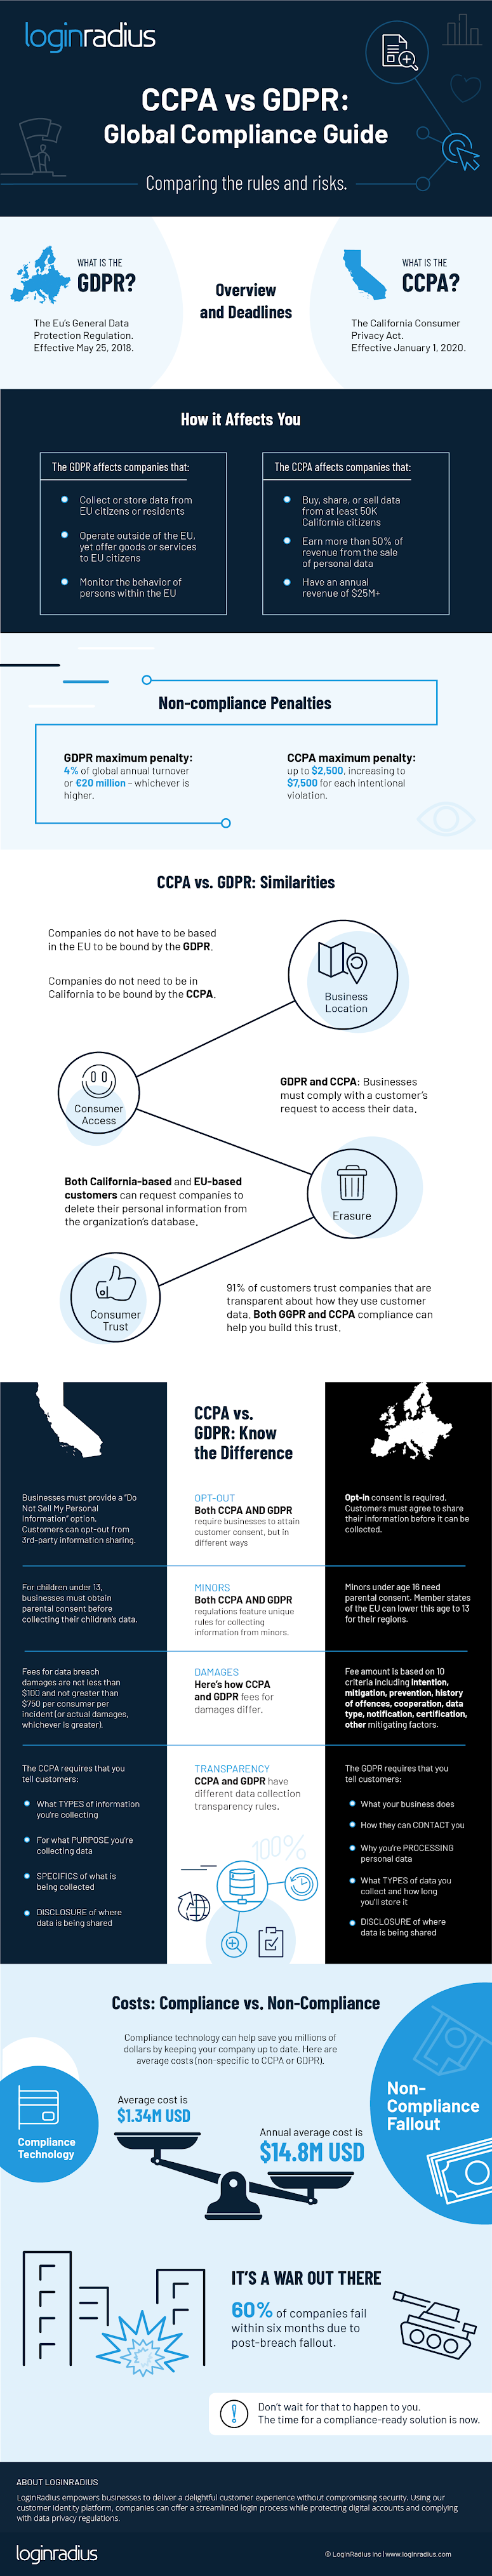 CCPA vs GDPR: A Guide to Compliance #infographic